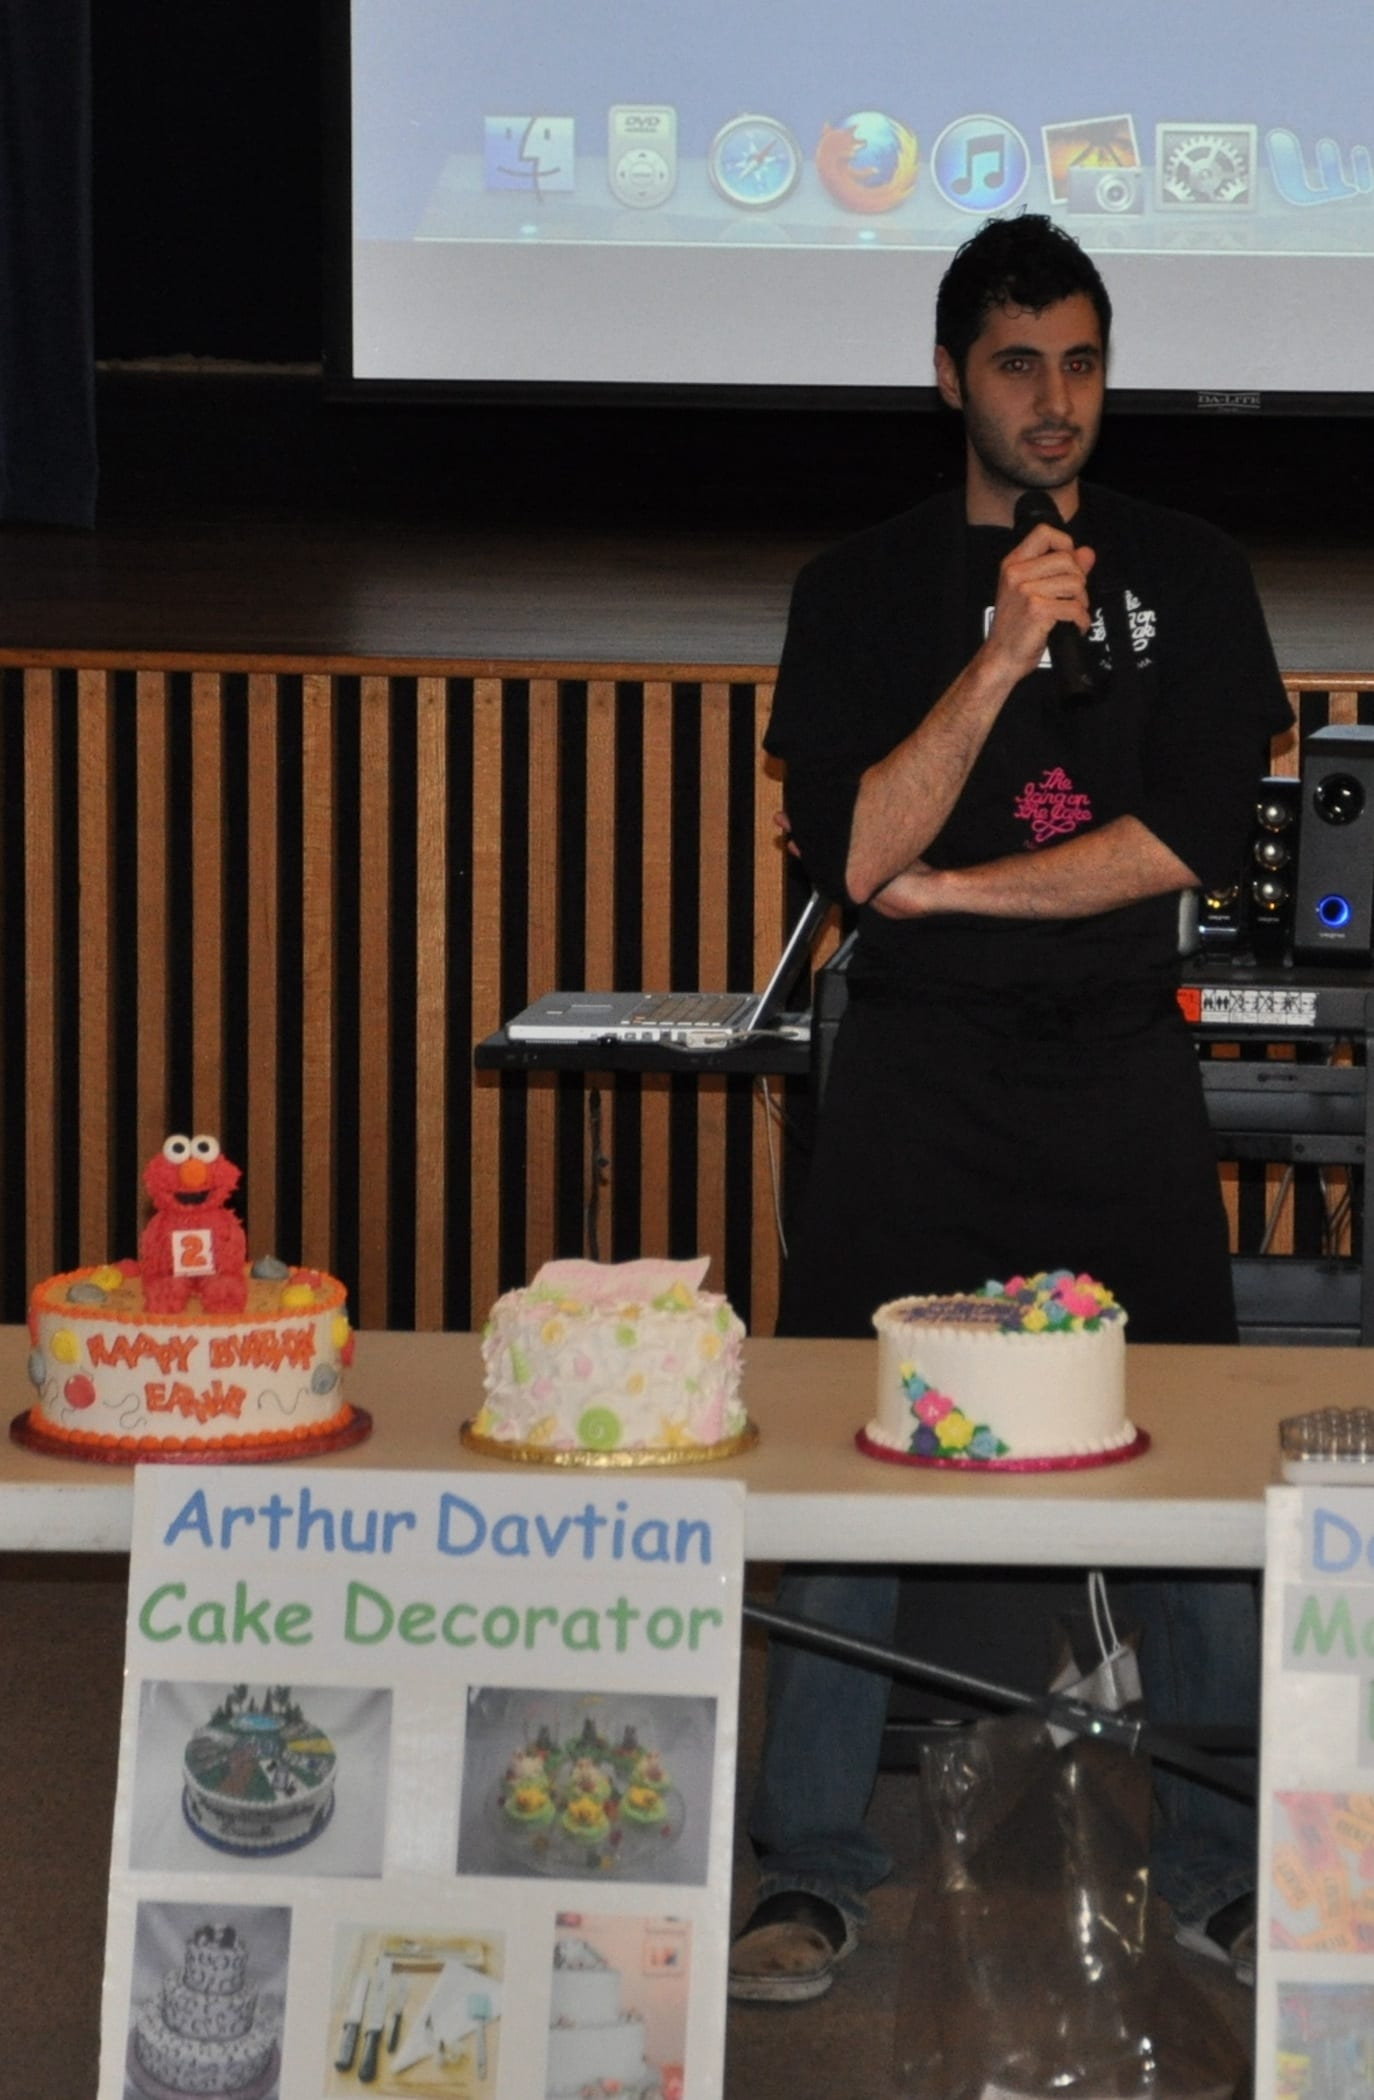 Cake Decorating Career career fair for upper students - cotting school : cotting school